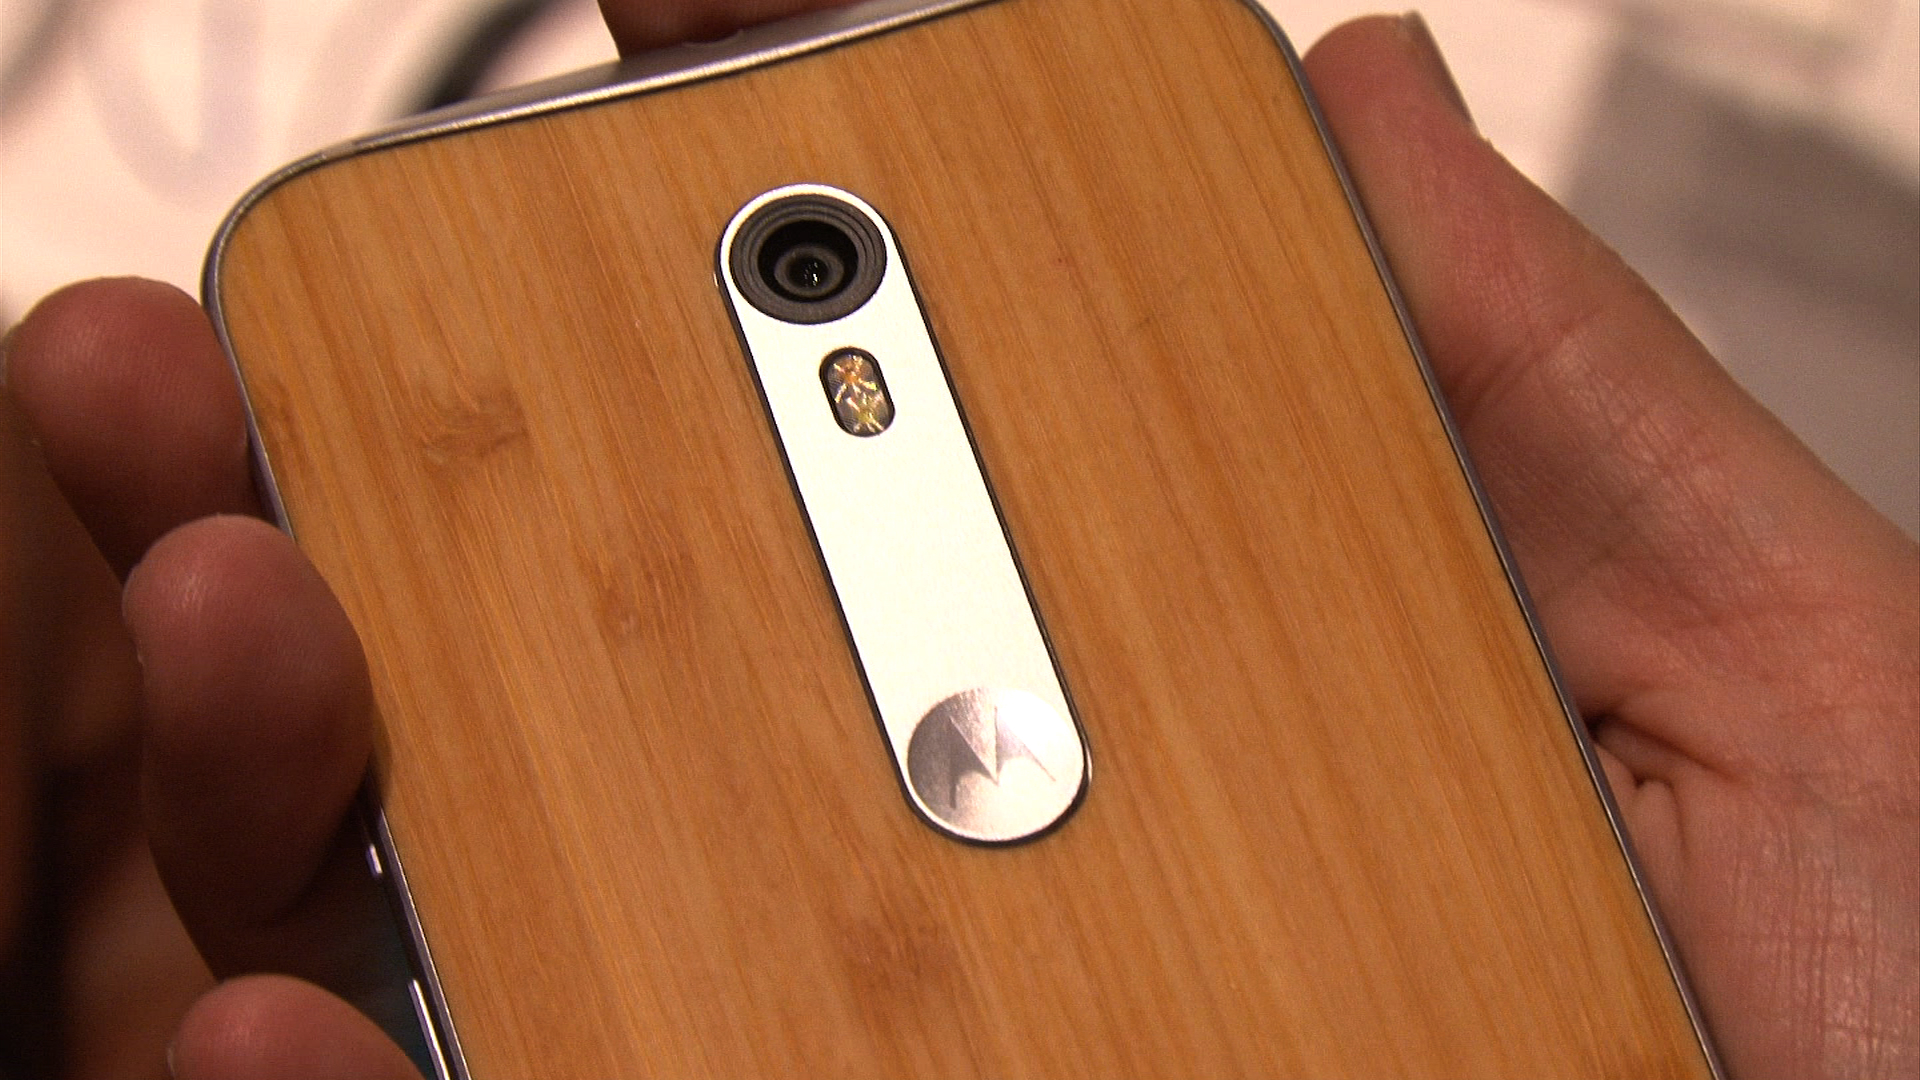 Video: First look: Moto X Style (Pure Edition) takes a leap with bigger, better screen and camera, unlocked quad-band LTE